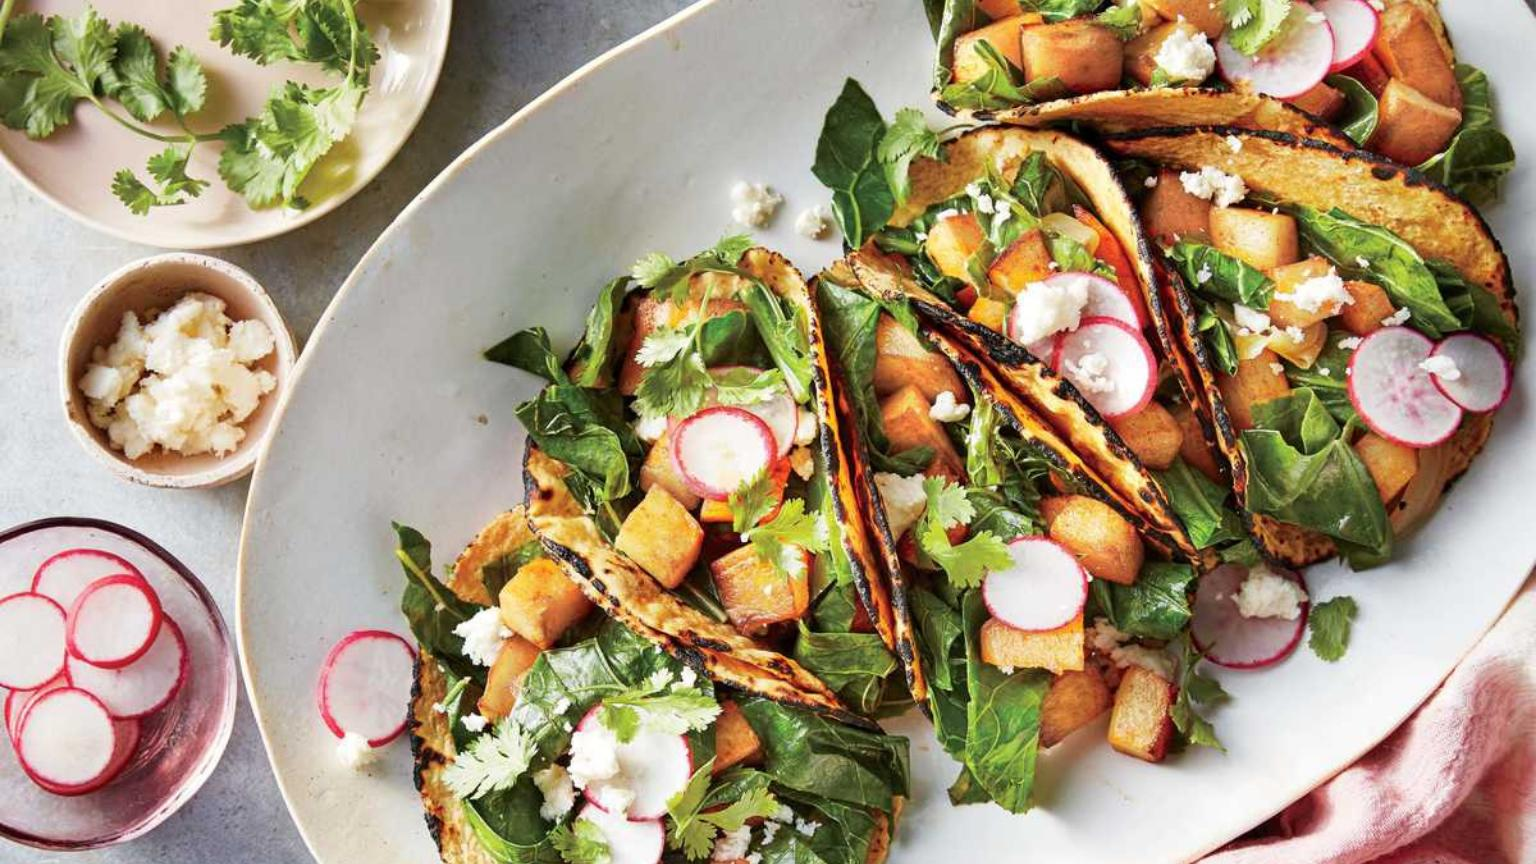 40 Easy Vegetarian Recipes for Busy Weeknights